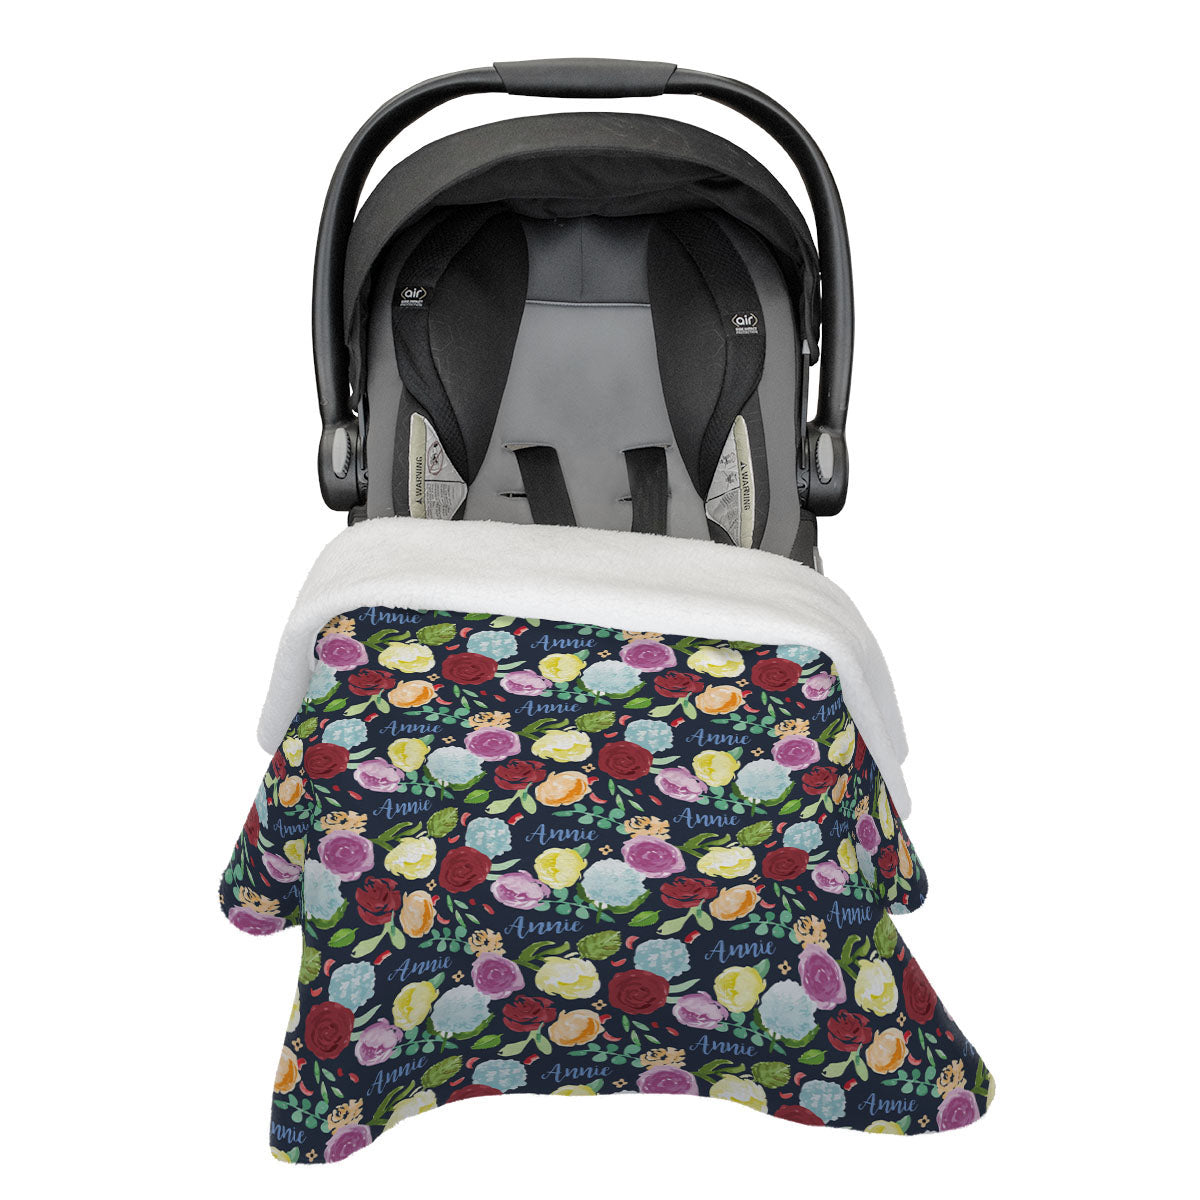 Bella's Painted Peony Rainbow | Rose Garden | Car Seat Blanket